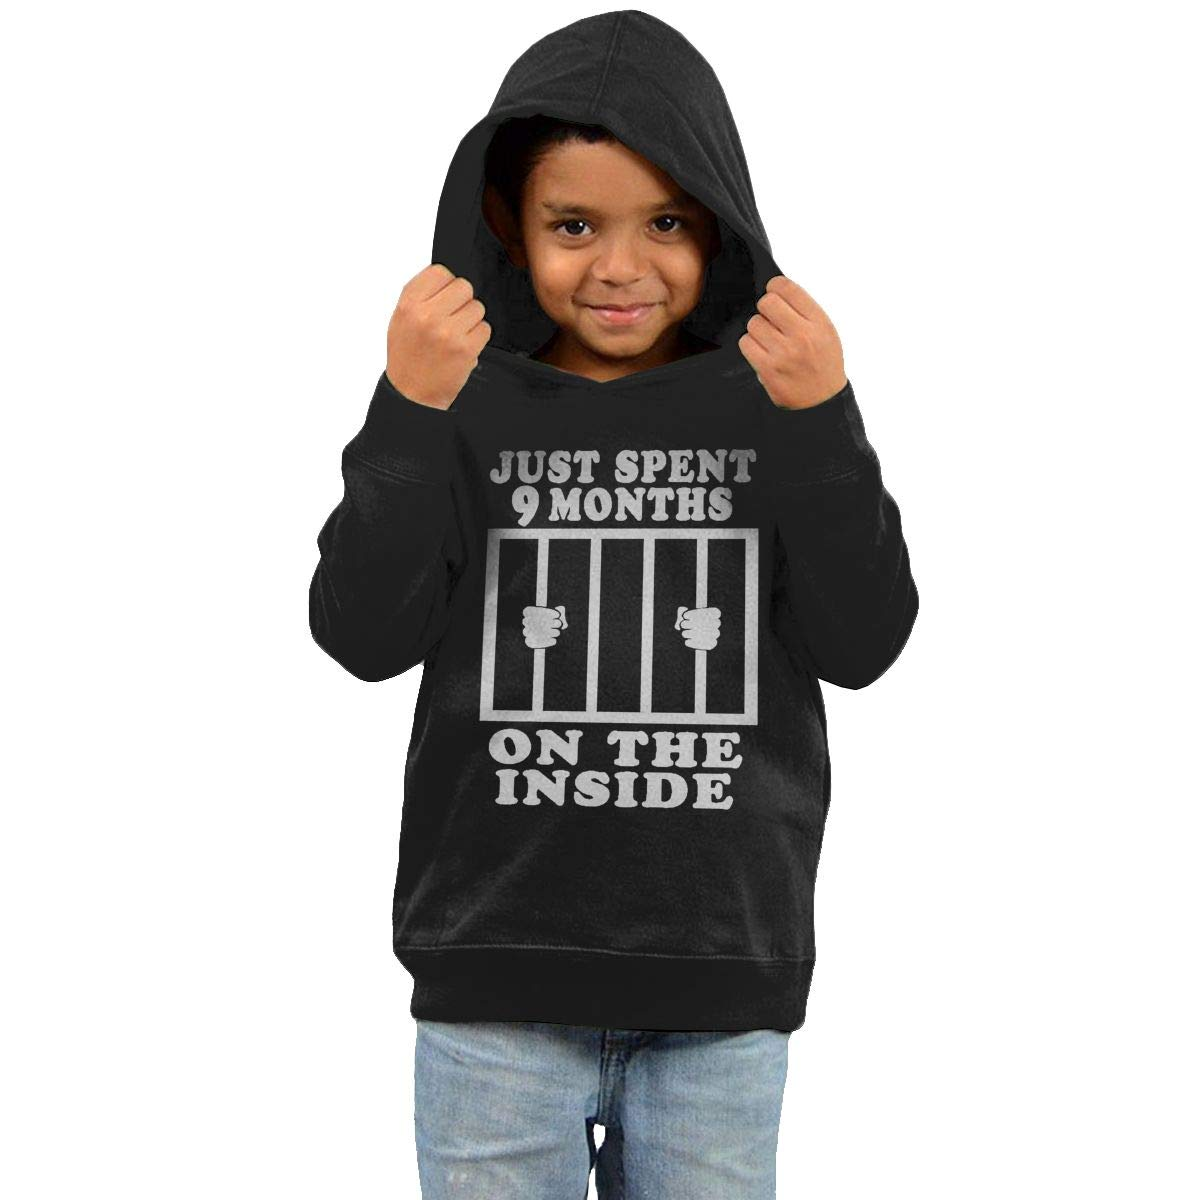 Childrens Hooded Sweater Just Spent 9 Months On The Inside Kids Sweater Black